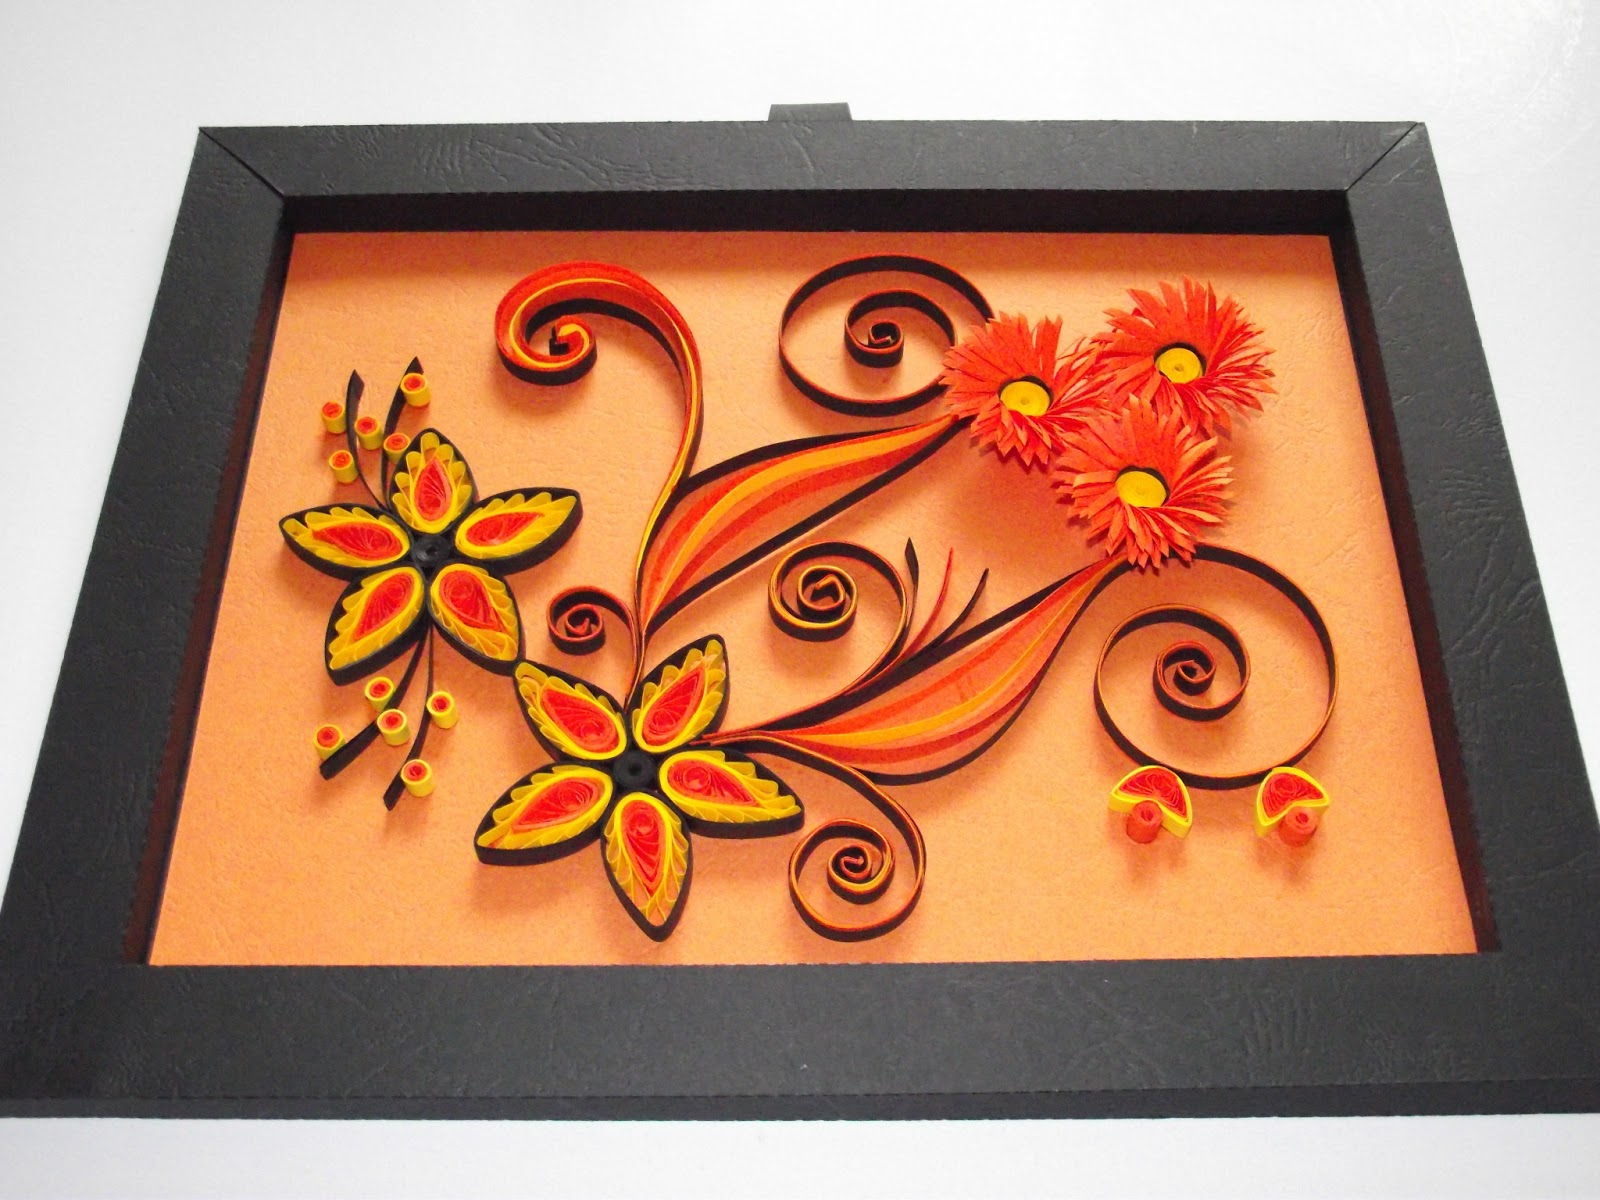 invitatii handmade tablouri quilling modele mai iunie 2013. Black Bedroom Furniture Sets. Home Design Ideas